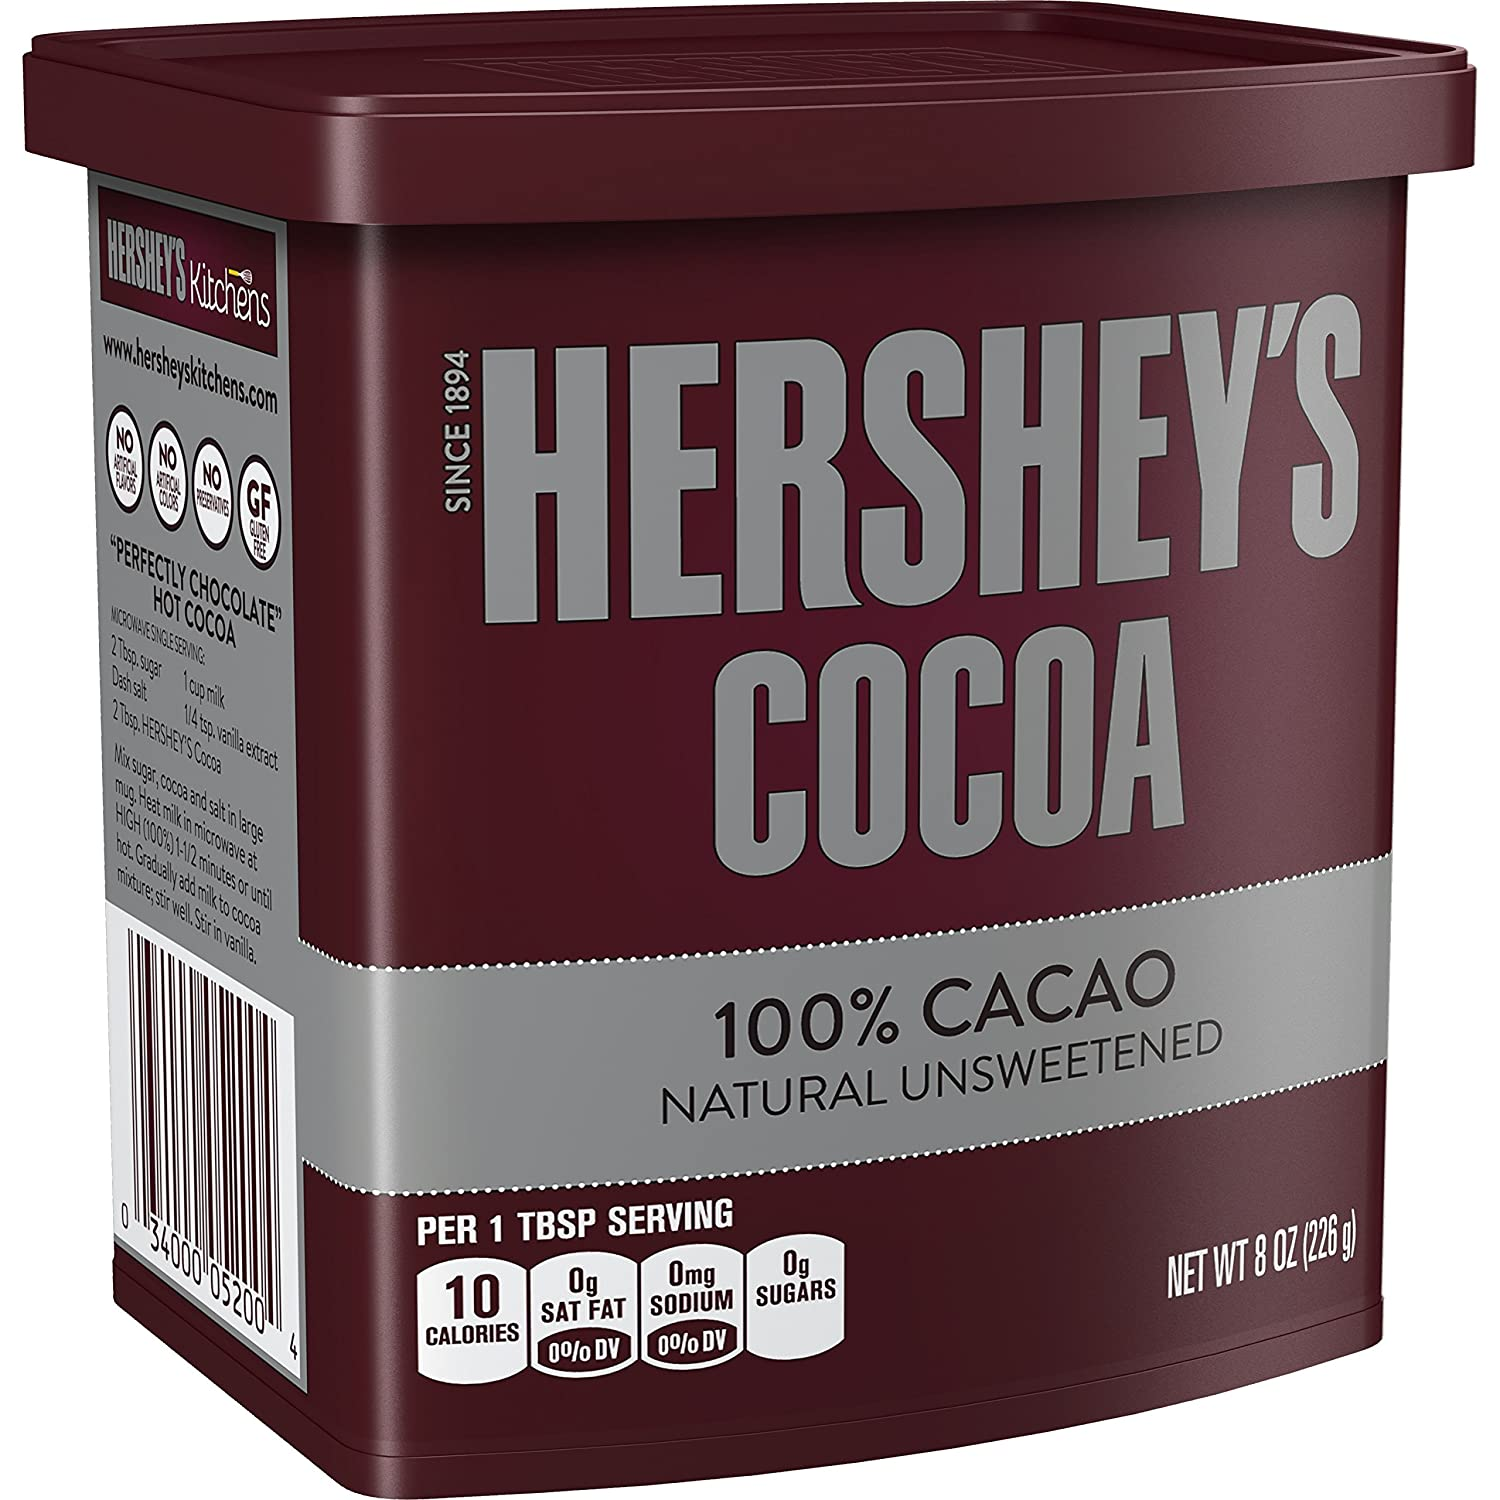 HERSHEY'S Natural Unsweetened